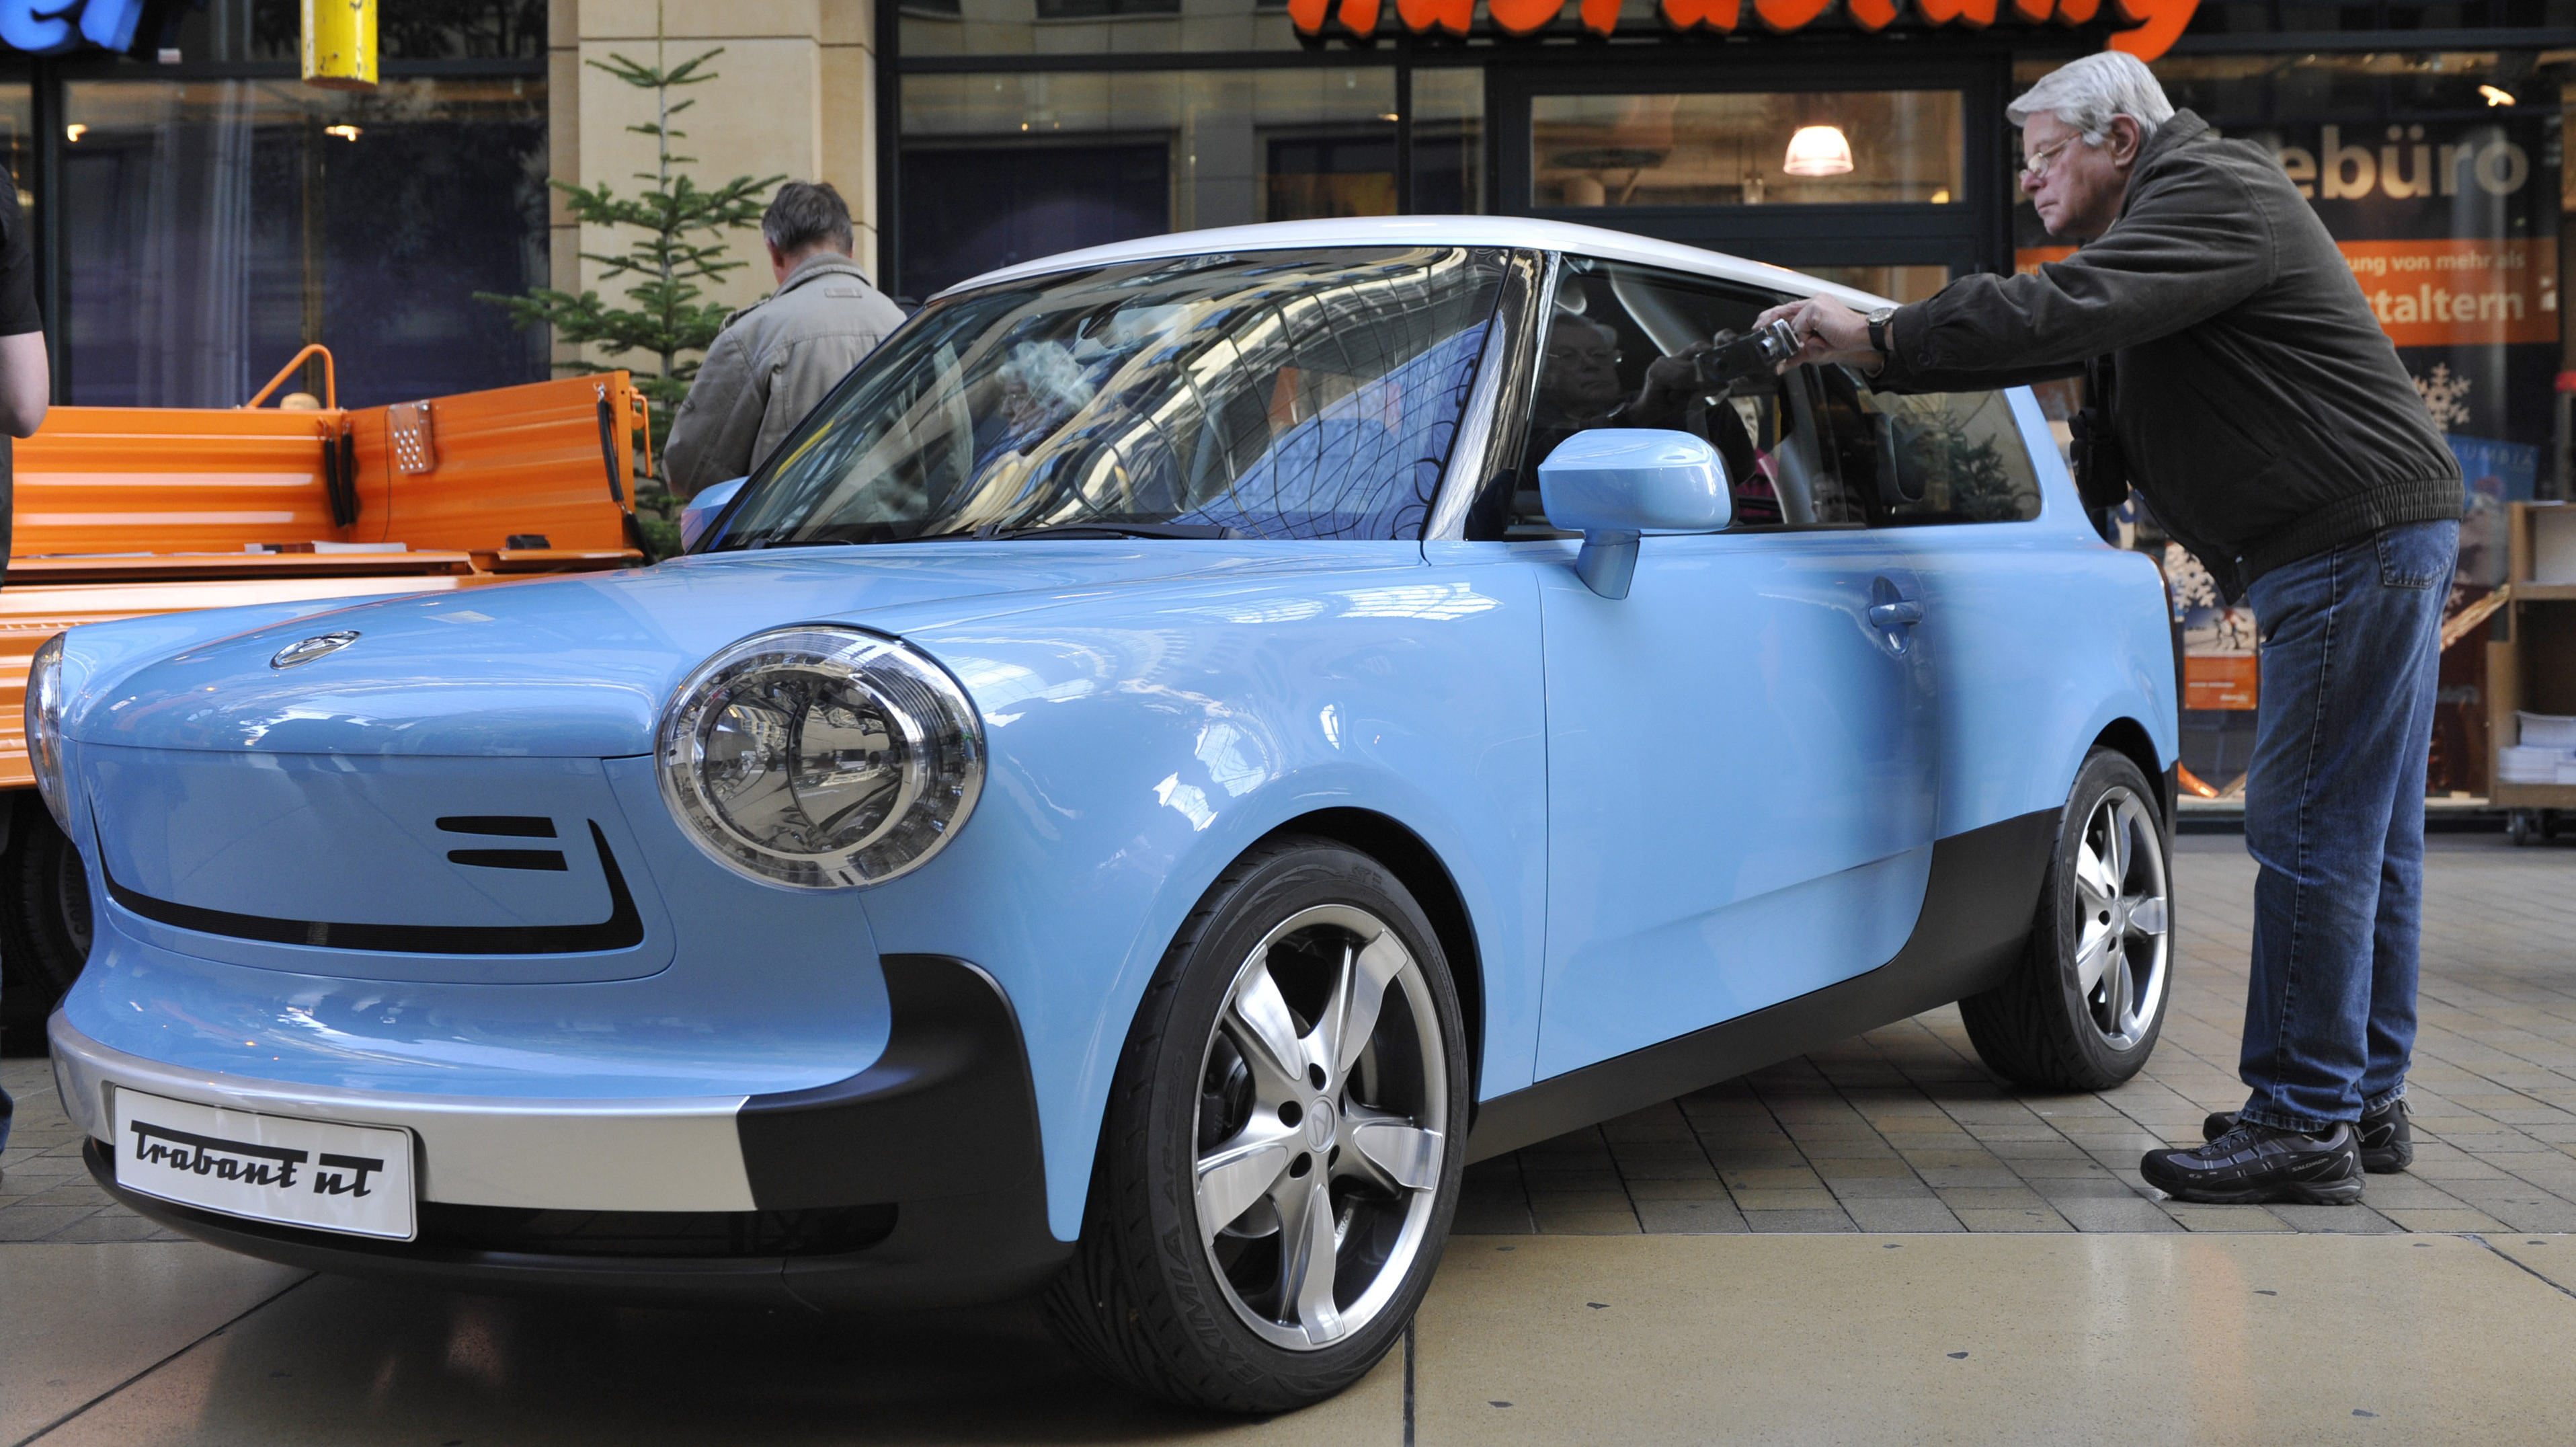 The Trabant NT electric car is presented during a show at a shopping center in Dresden, Germany, in November 2009.